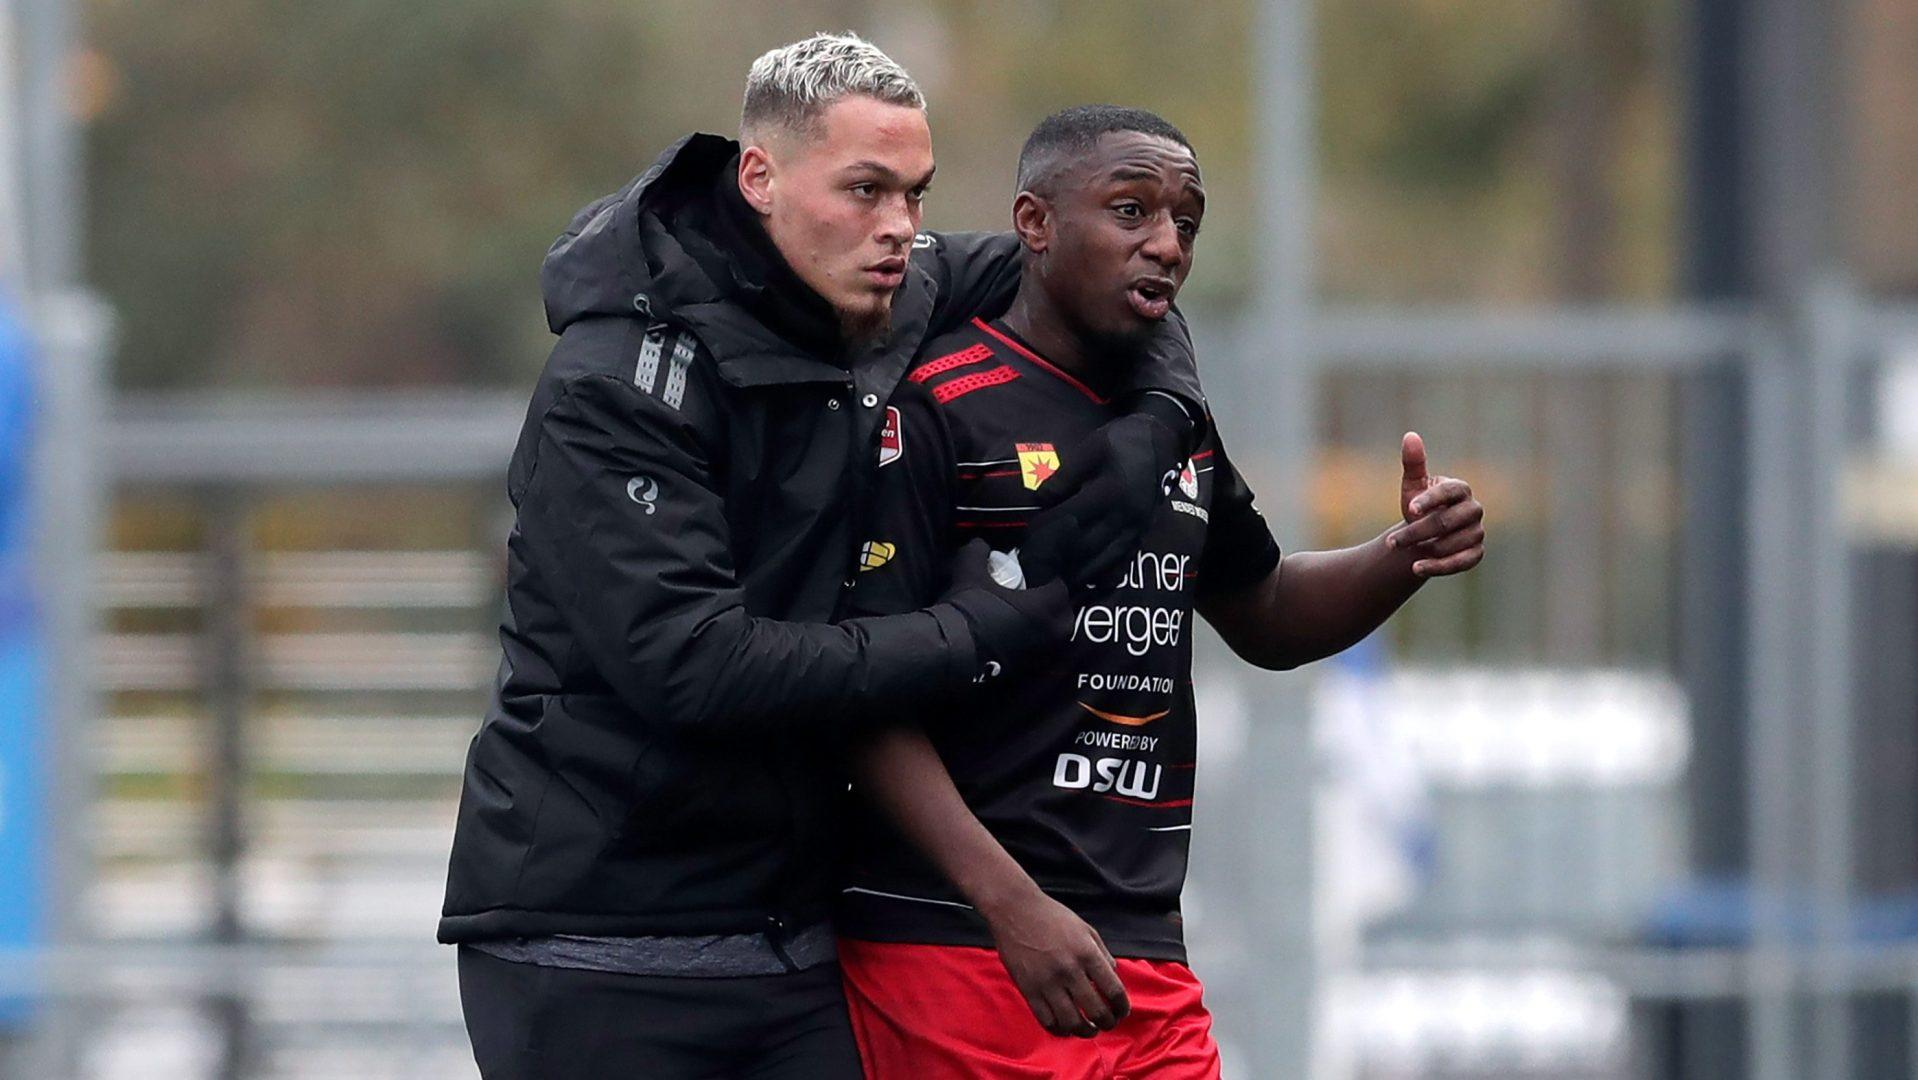 VIDEO: Dutch 2nd-division game stopped for racist abuse; player later scores goal